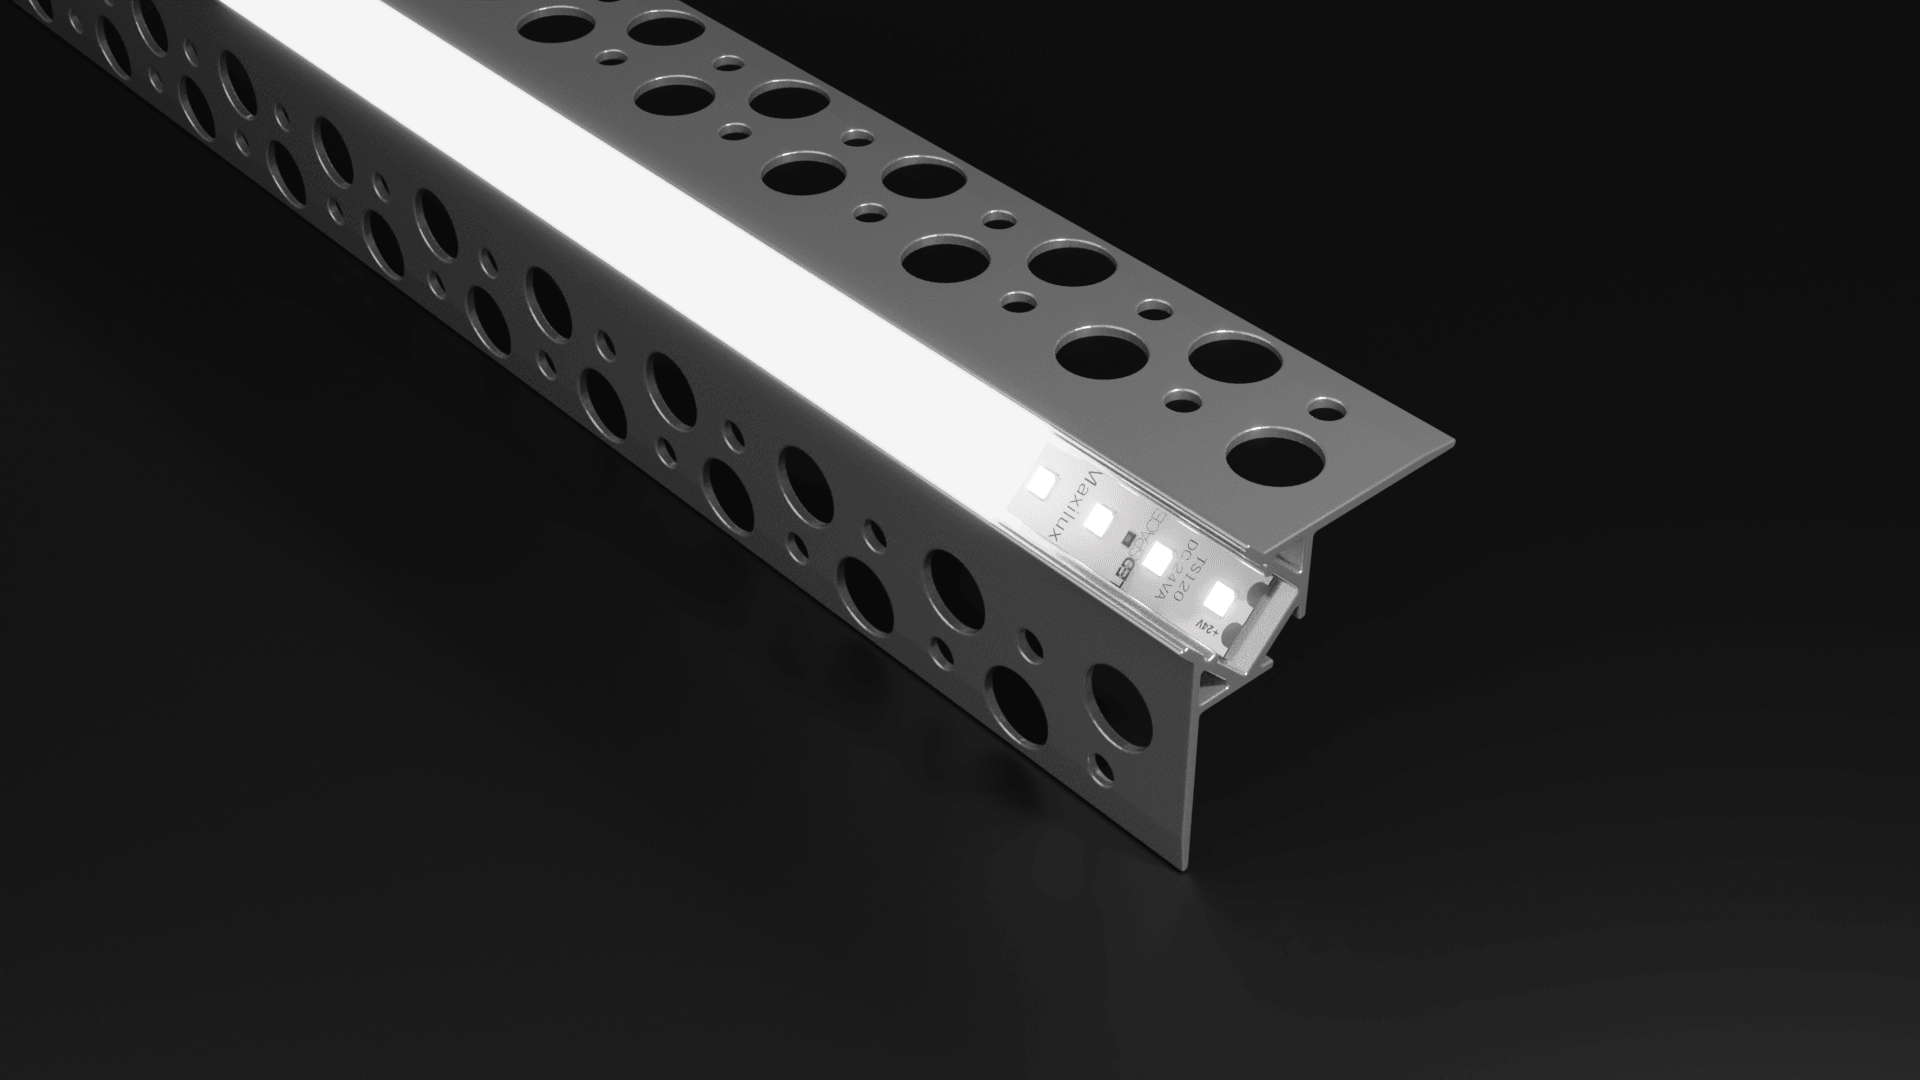 ALU70 External Corner Recessed Plaster In Aluminium and Diffuser For 10mm LED Strip (2.5m)